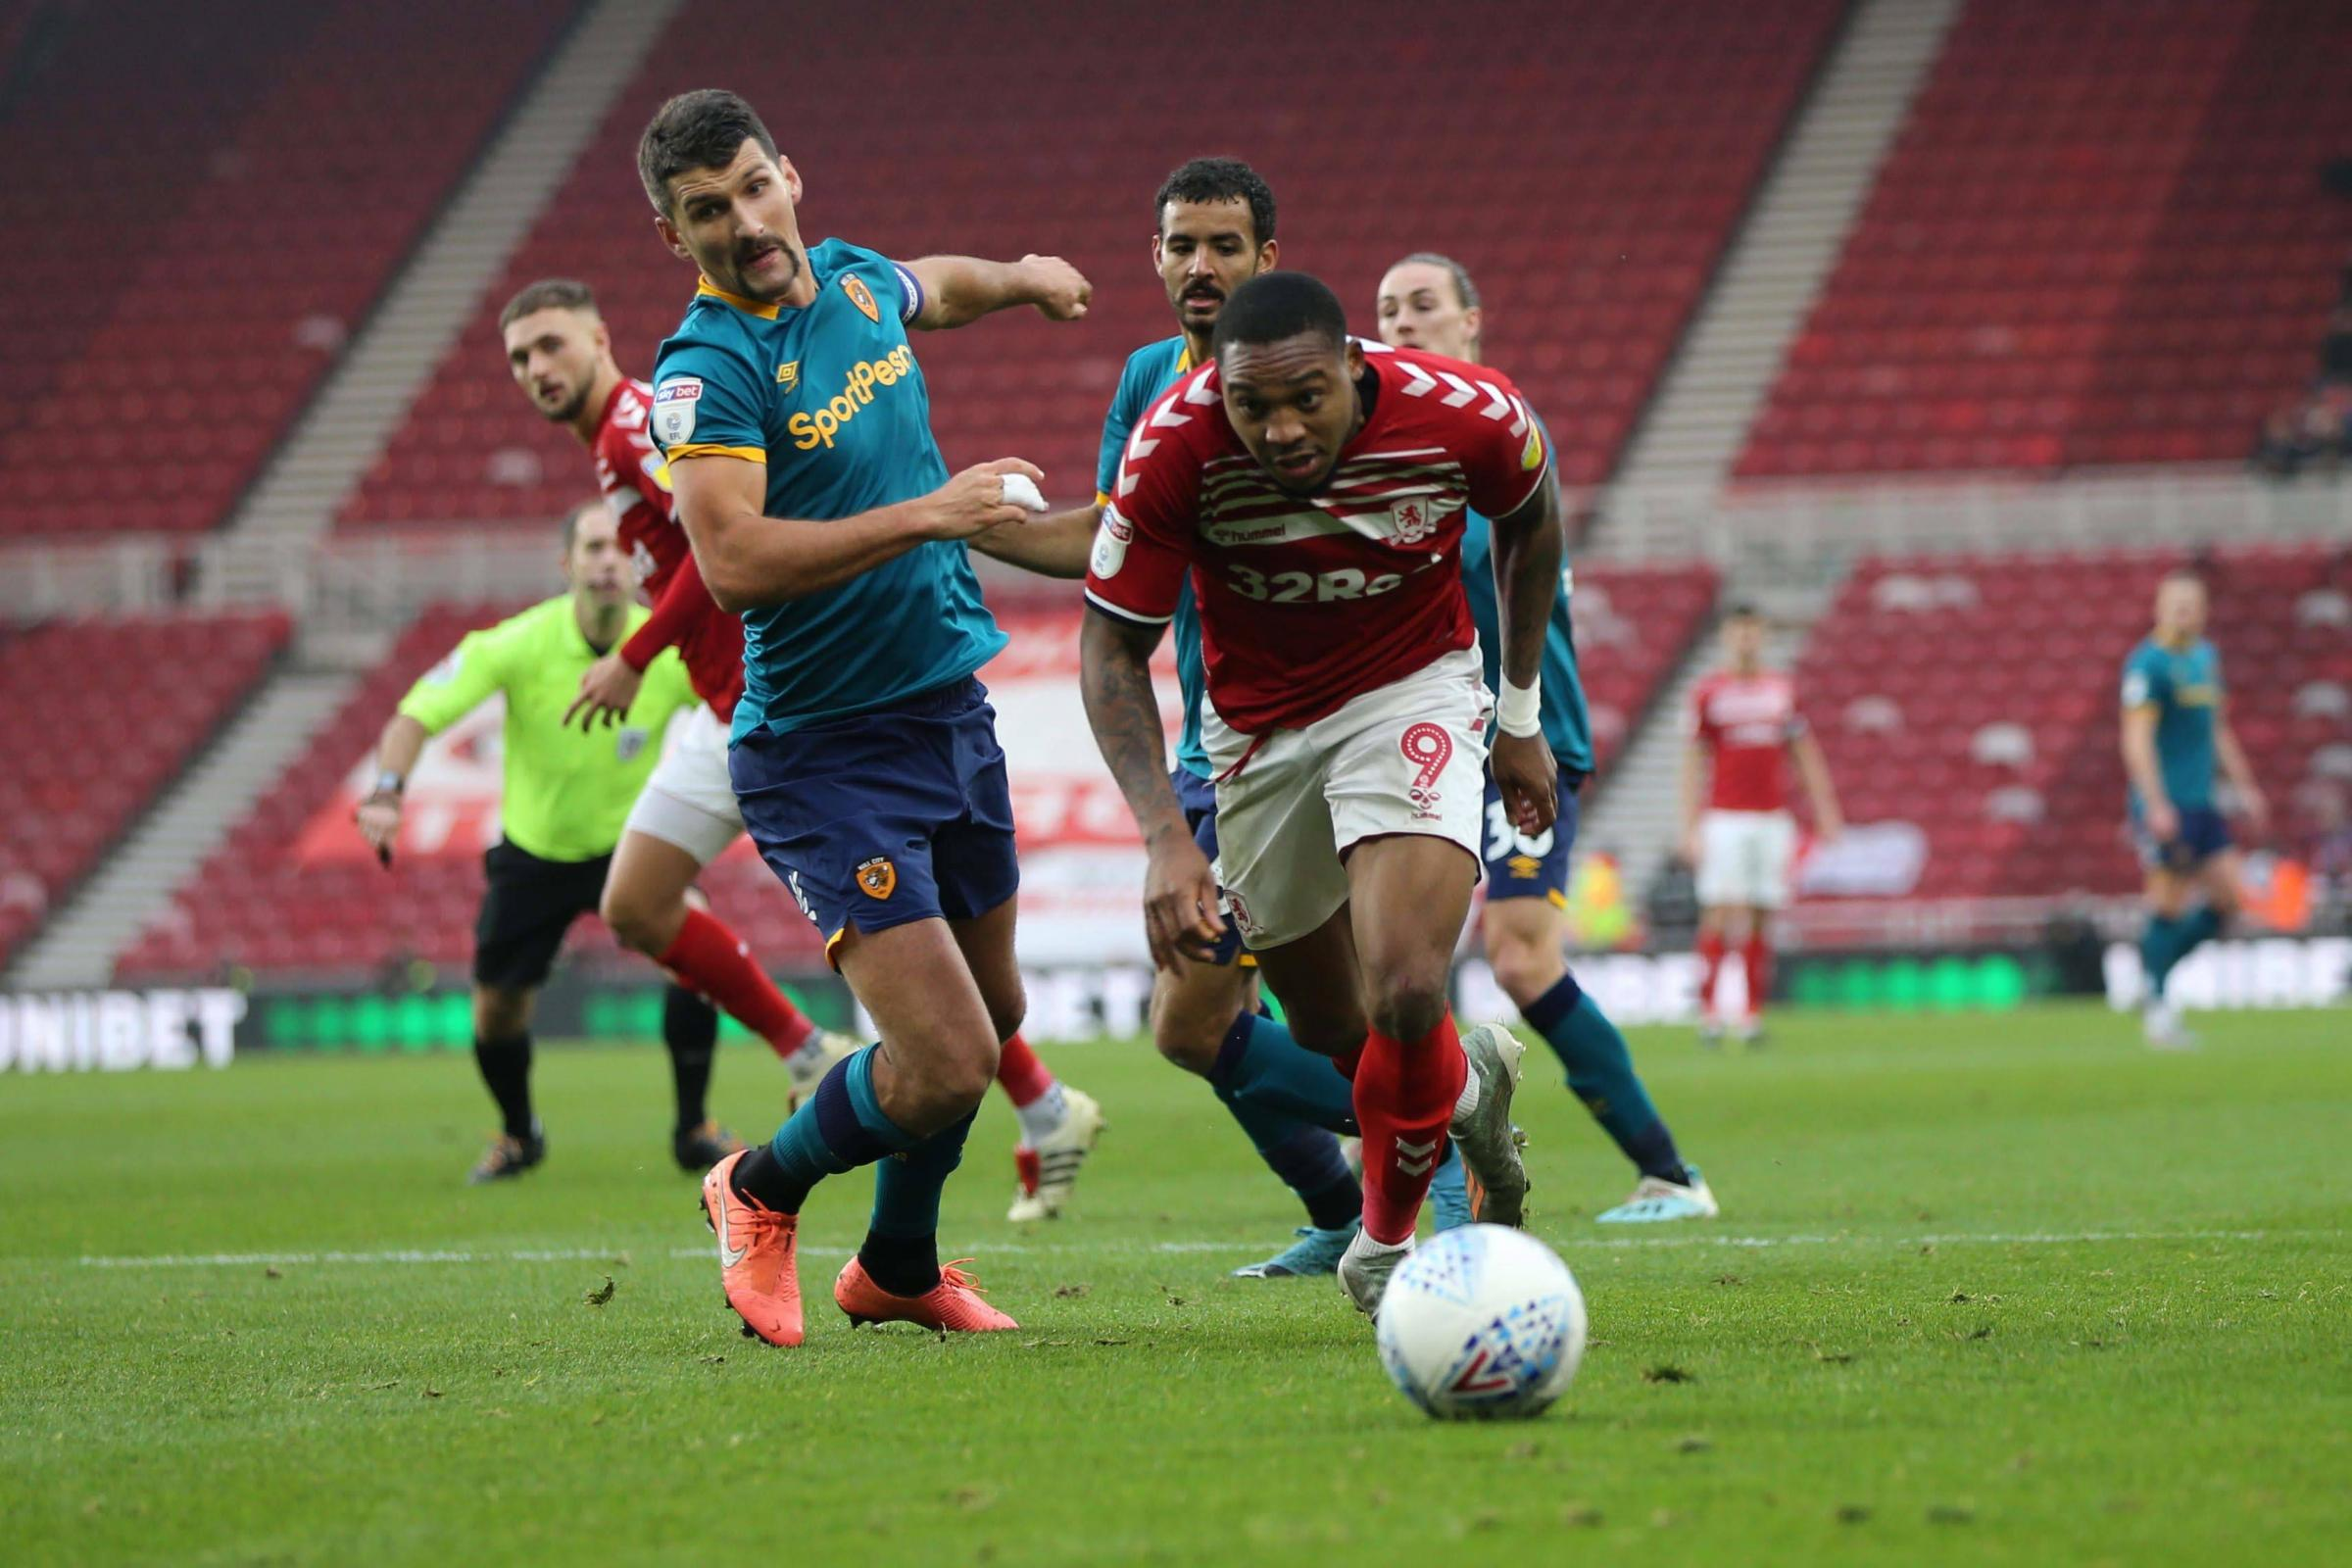 Boro's Britt battle and Woodgate considers defensive targets